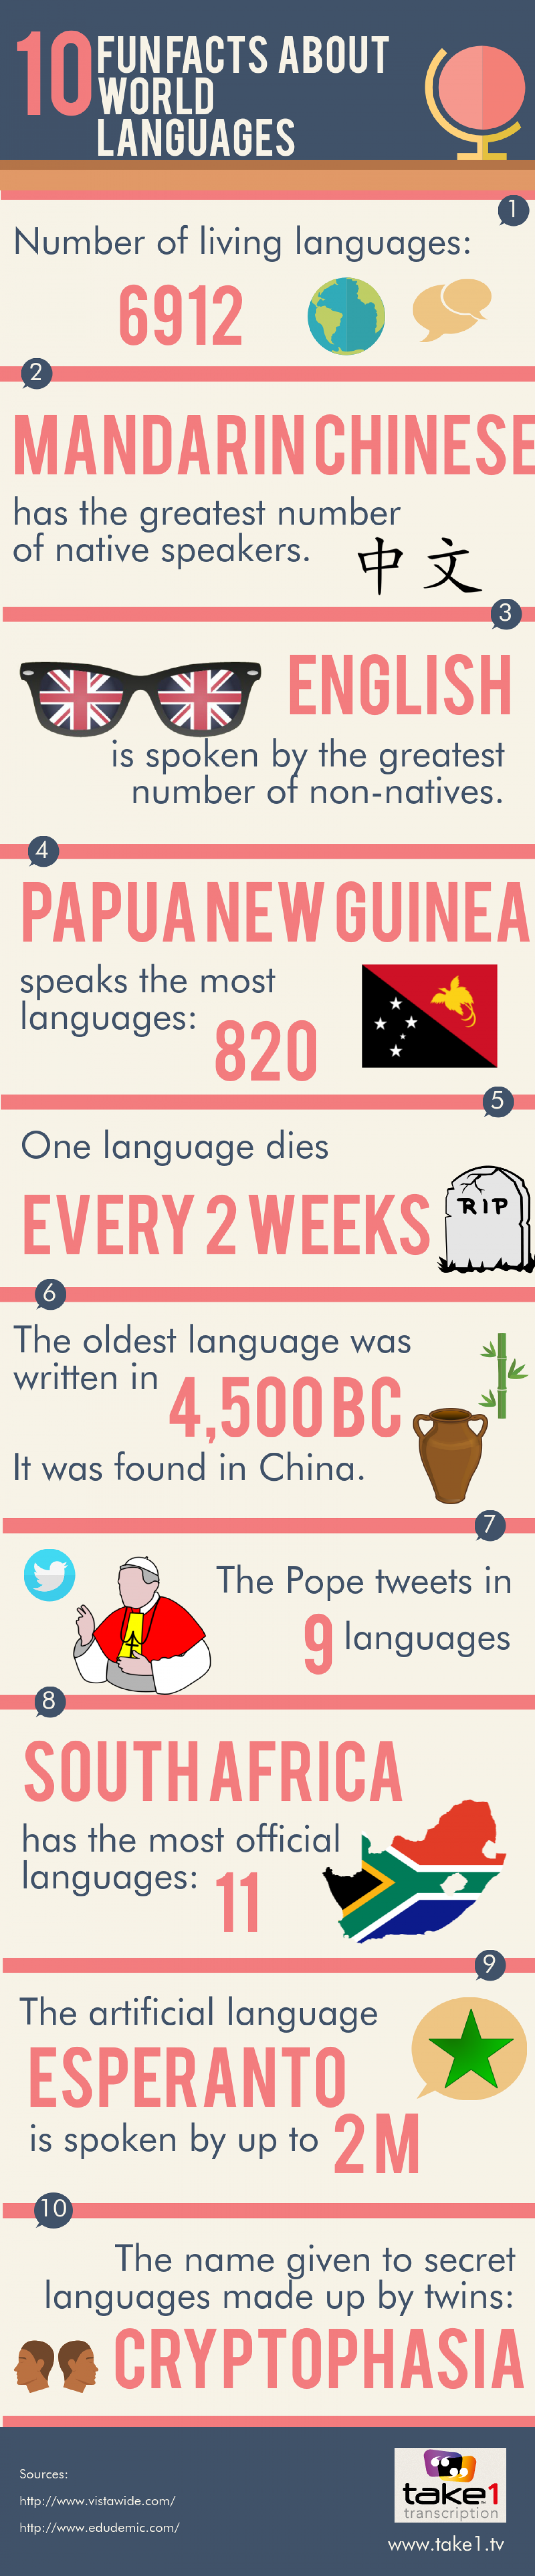 10 Fun Facts About World Languages Infographic